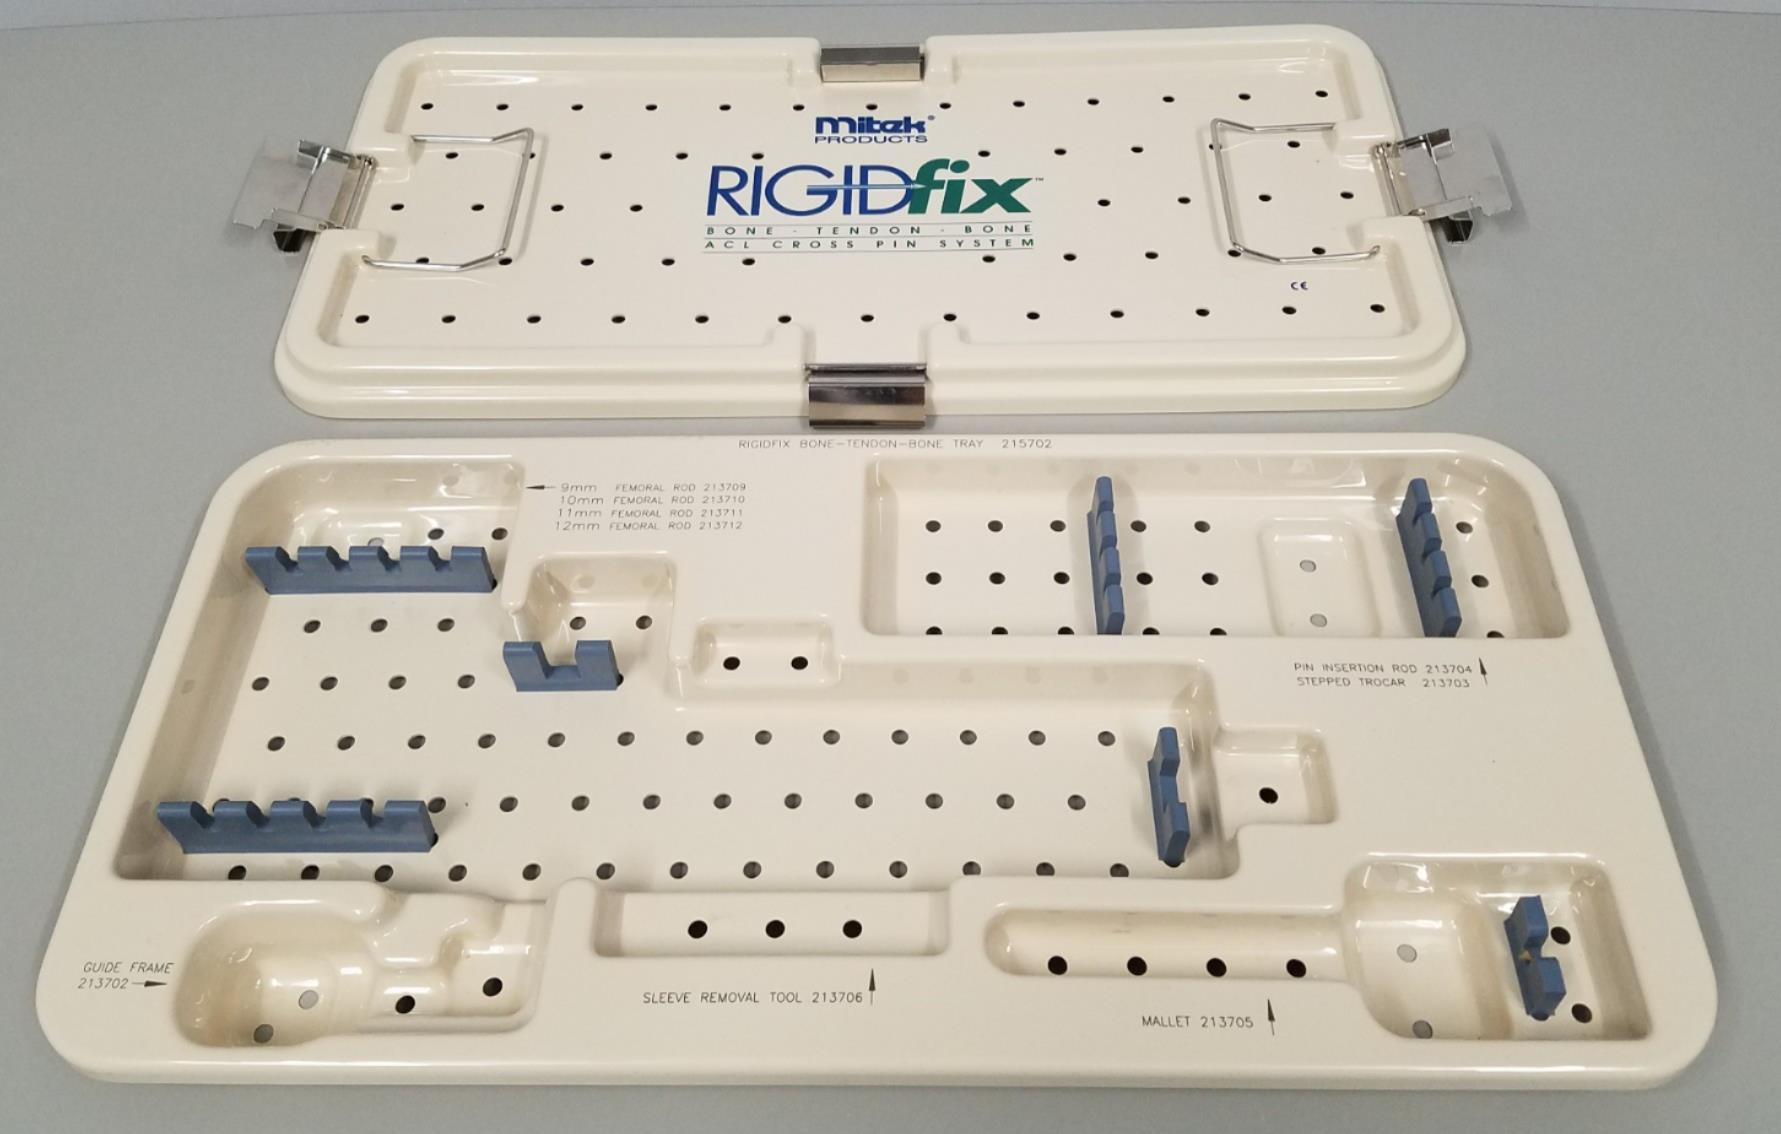 Mitek Rigidfix ACL Sterilization Case Excellent Condition 20